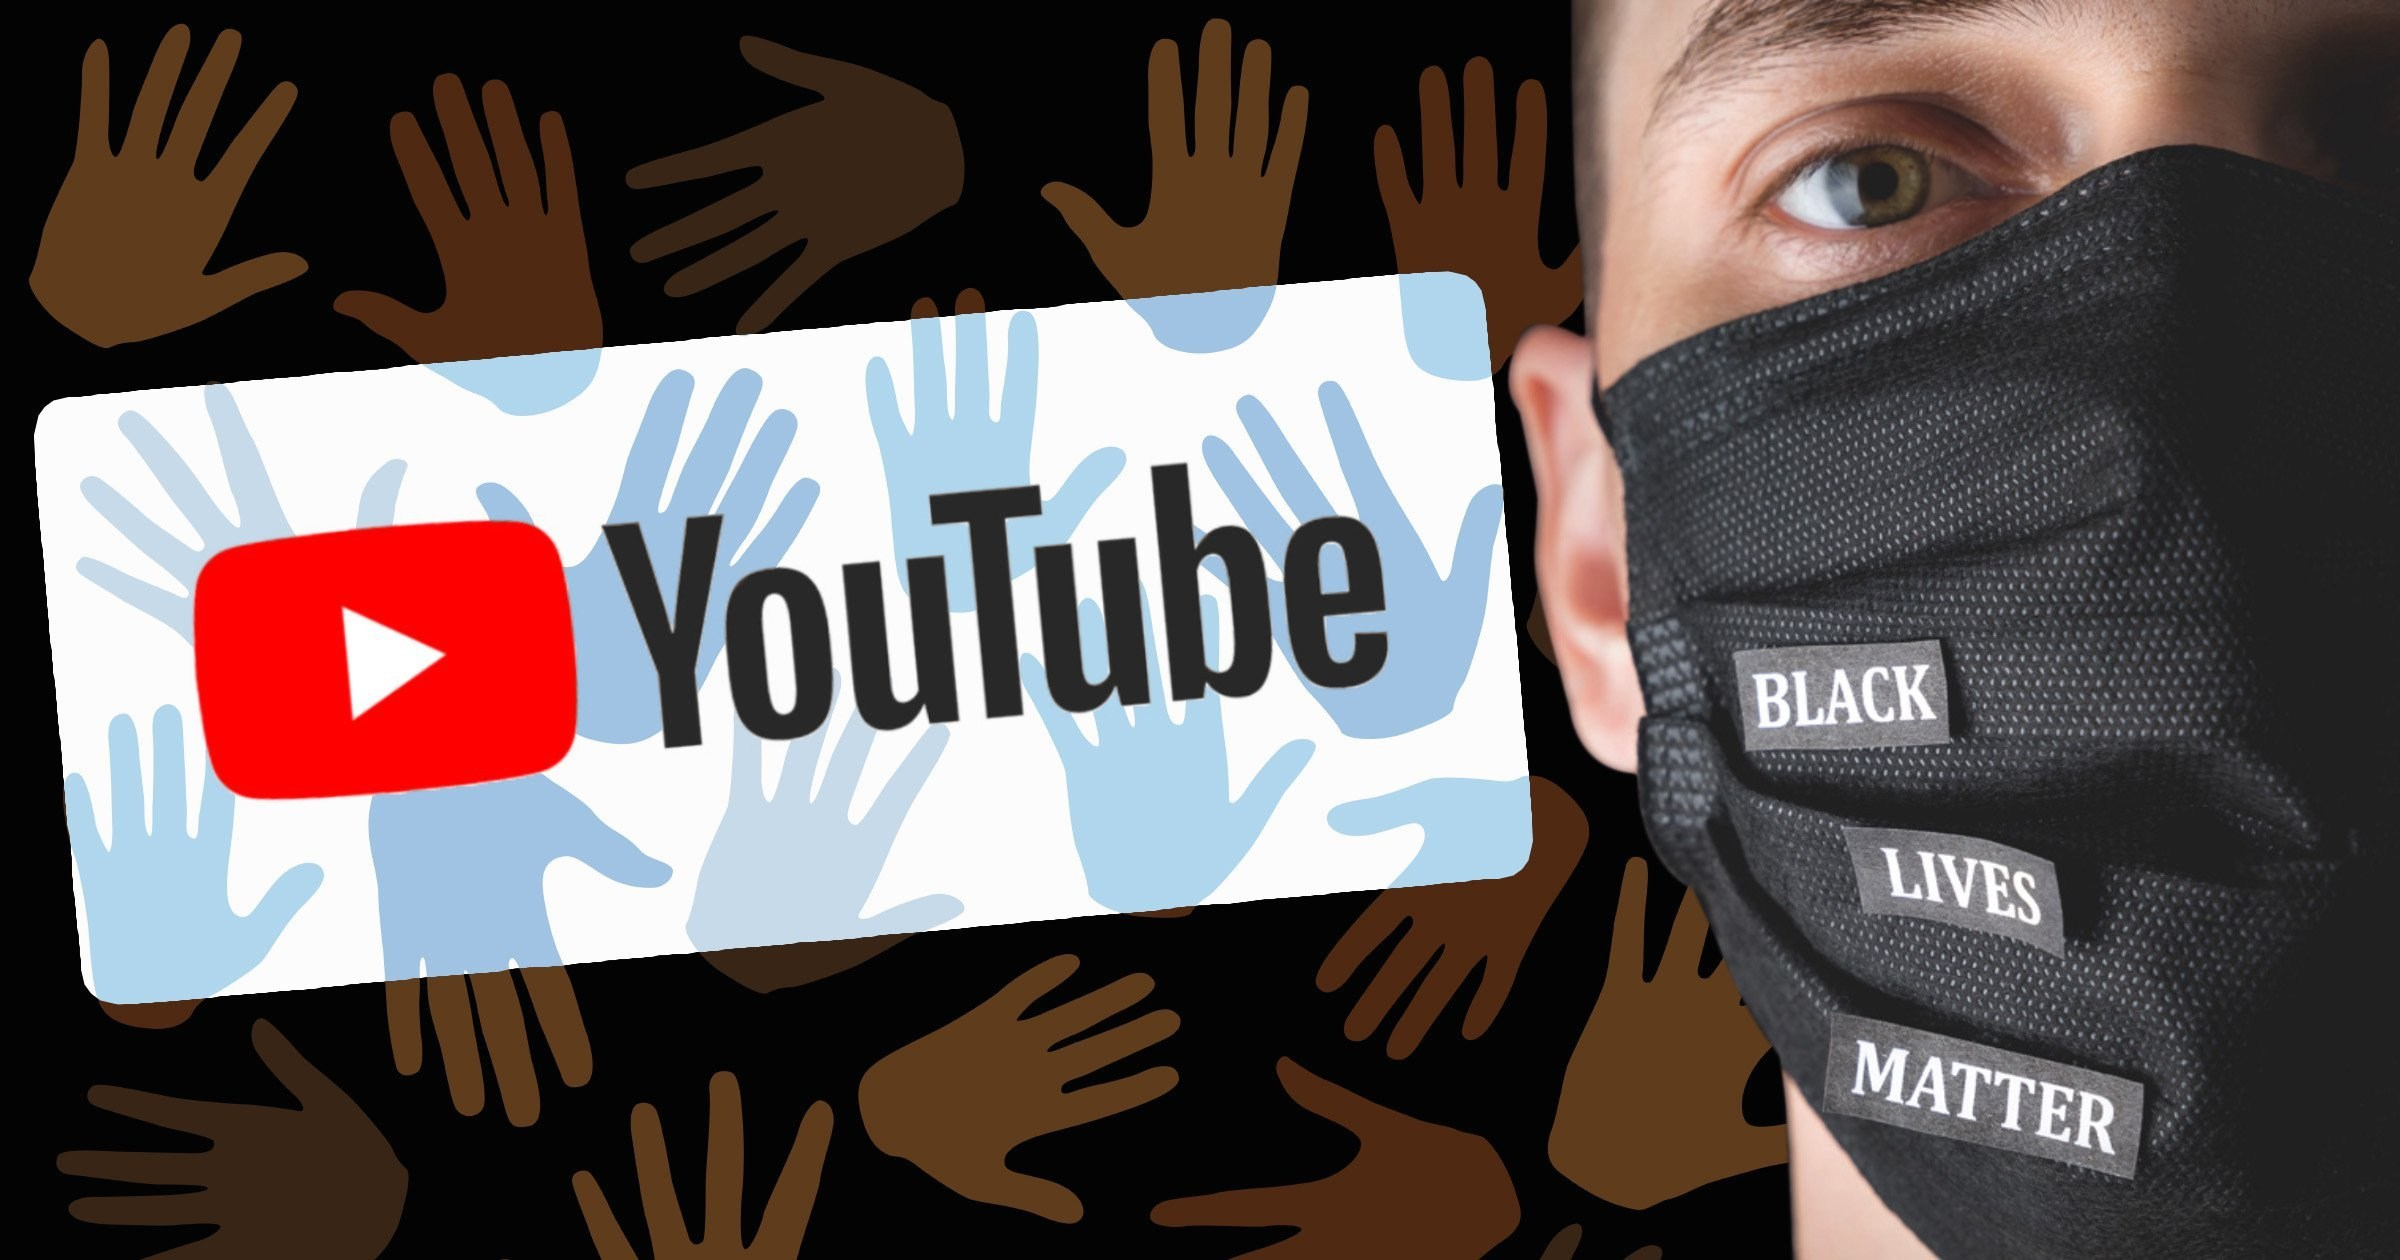 YouTube launches $100 million fund to support Black creators